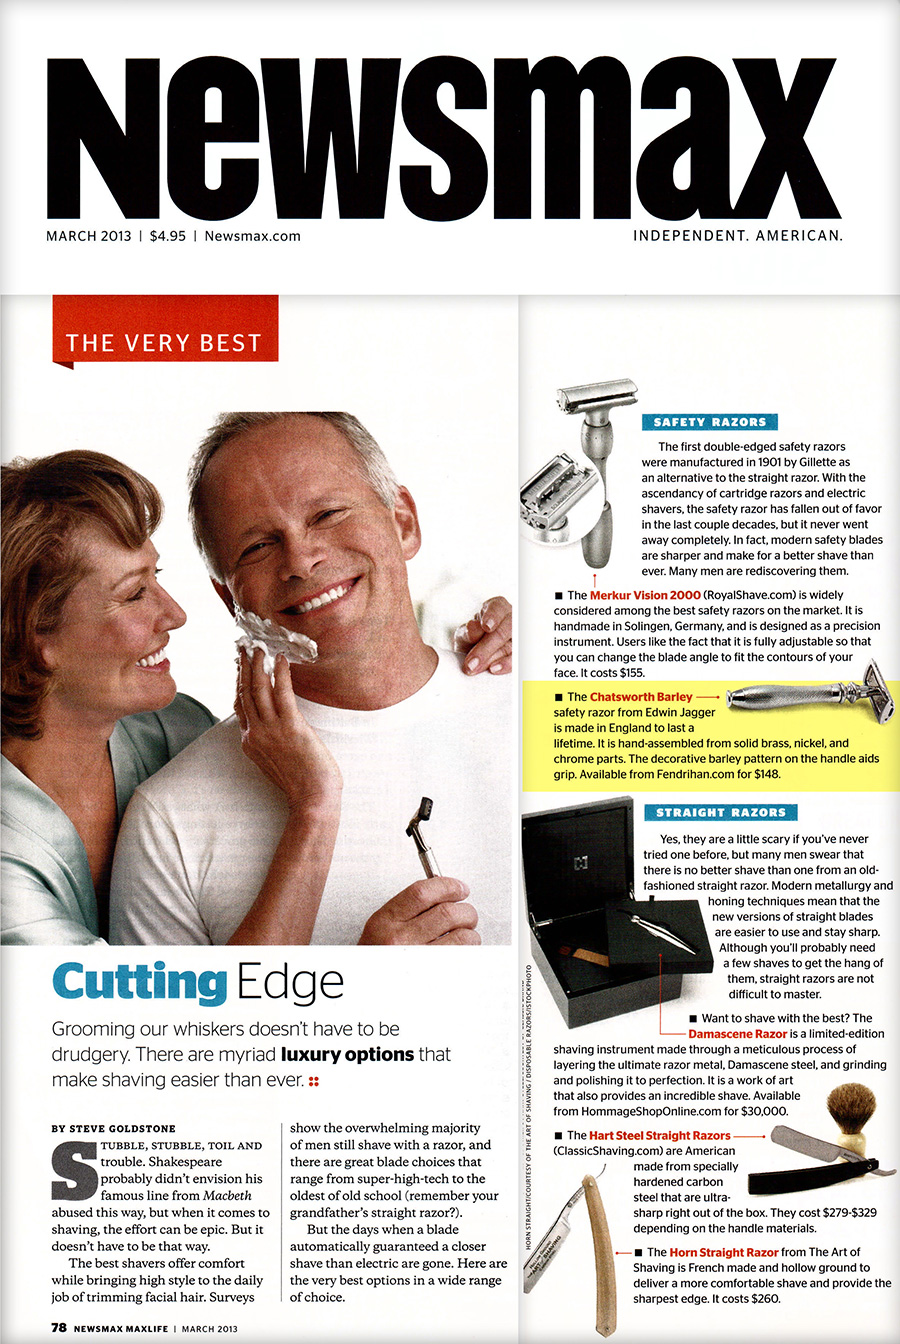 ... Best Men's Shavers Featured in NewsMax Magazine | FENDRIHAN the blog